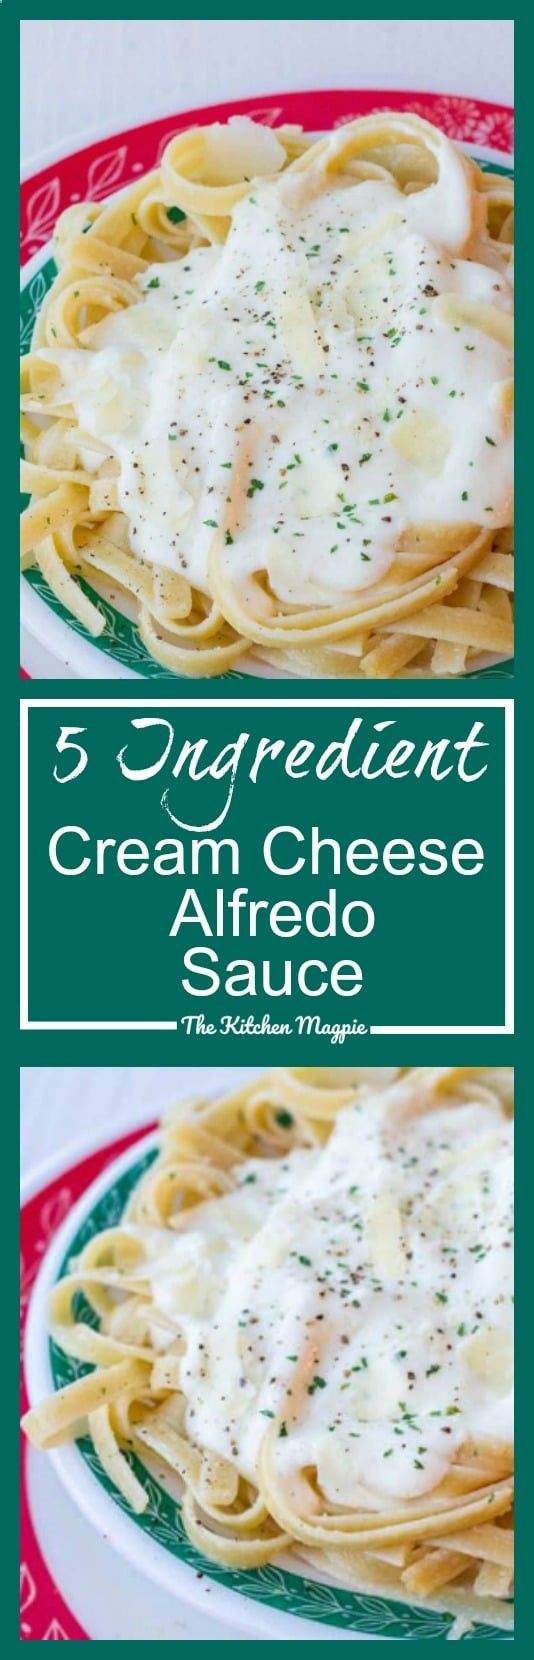 5 Ingredient Cream Cheese Alfredo Sauce Recipe - The Kitchen Magpie ...